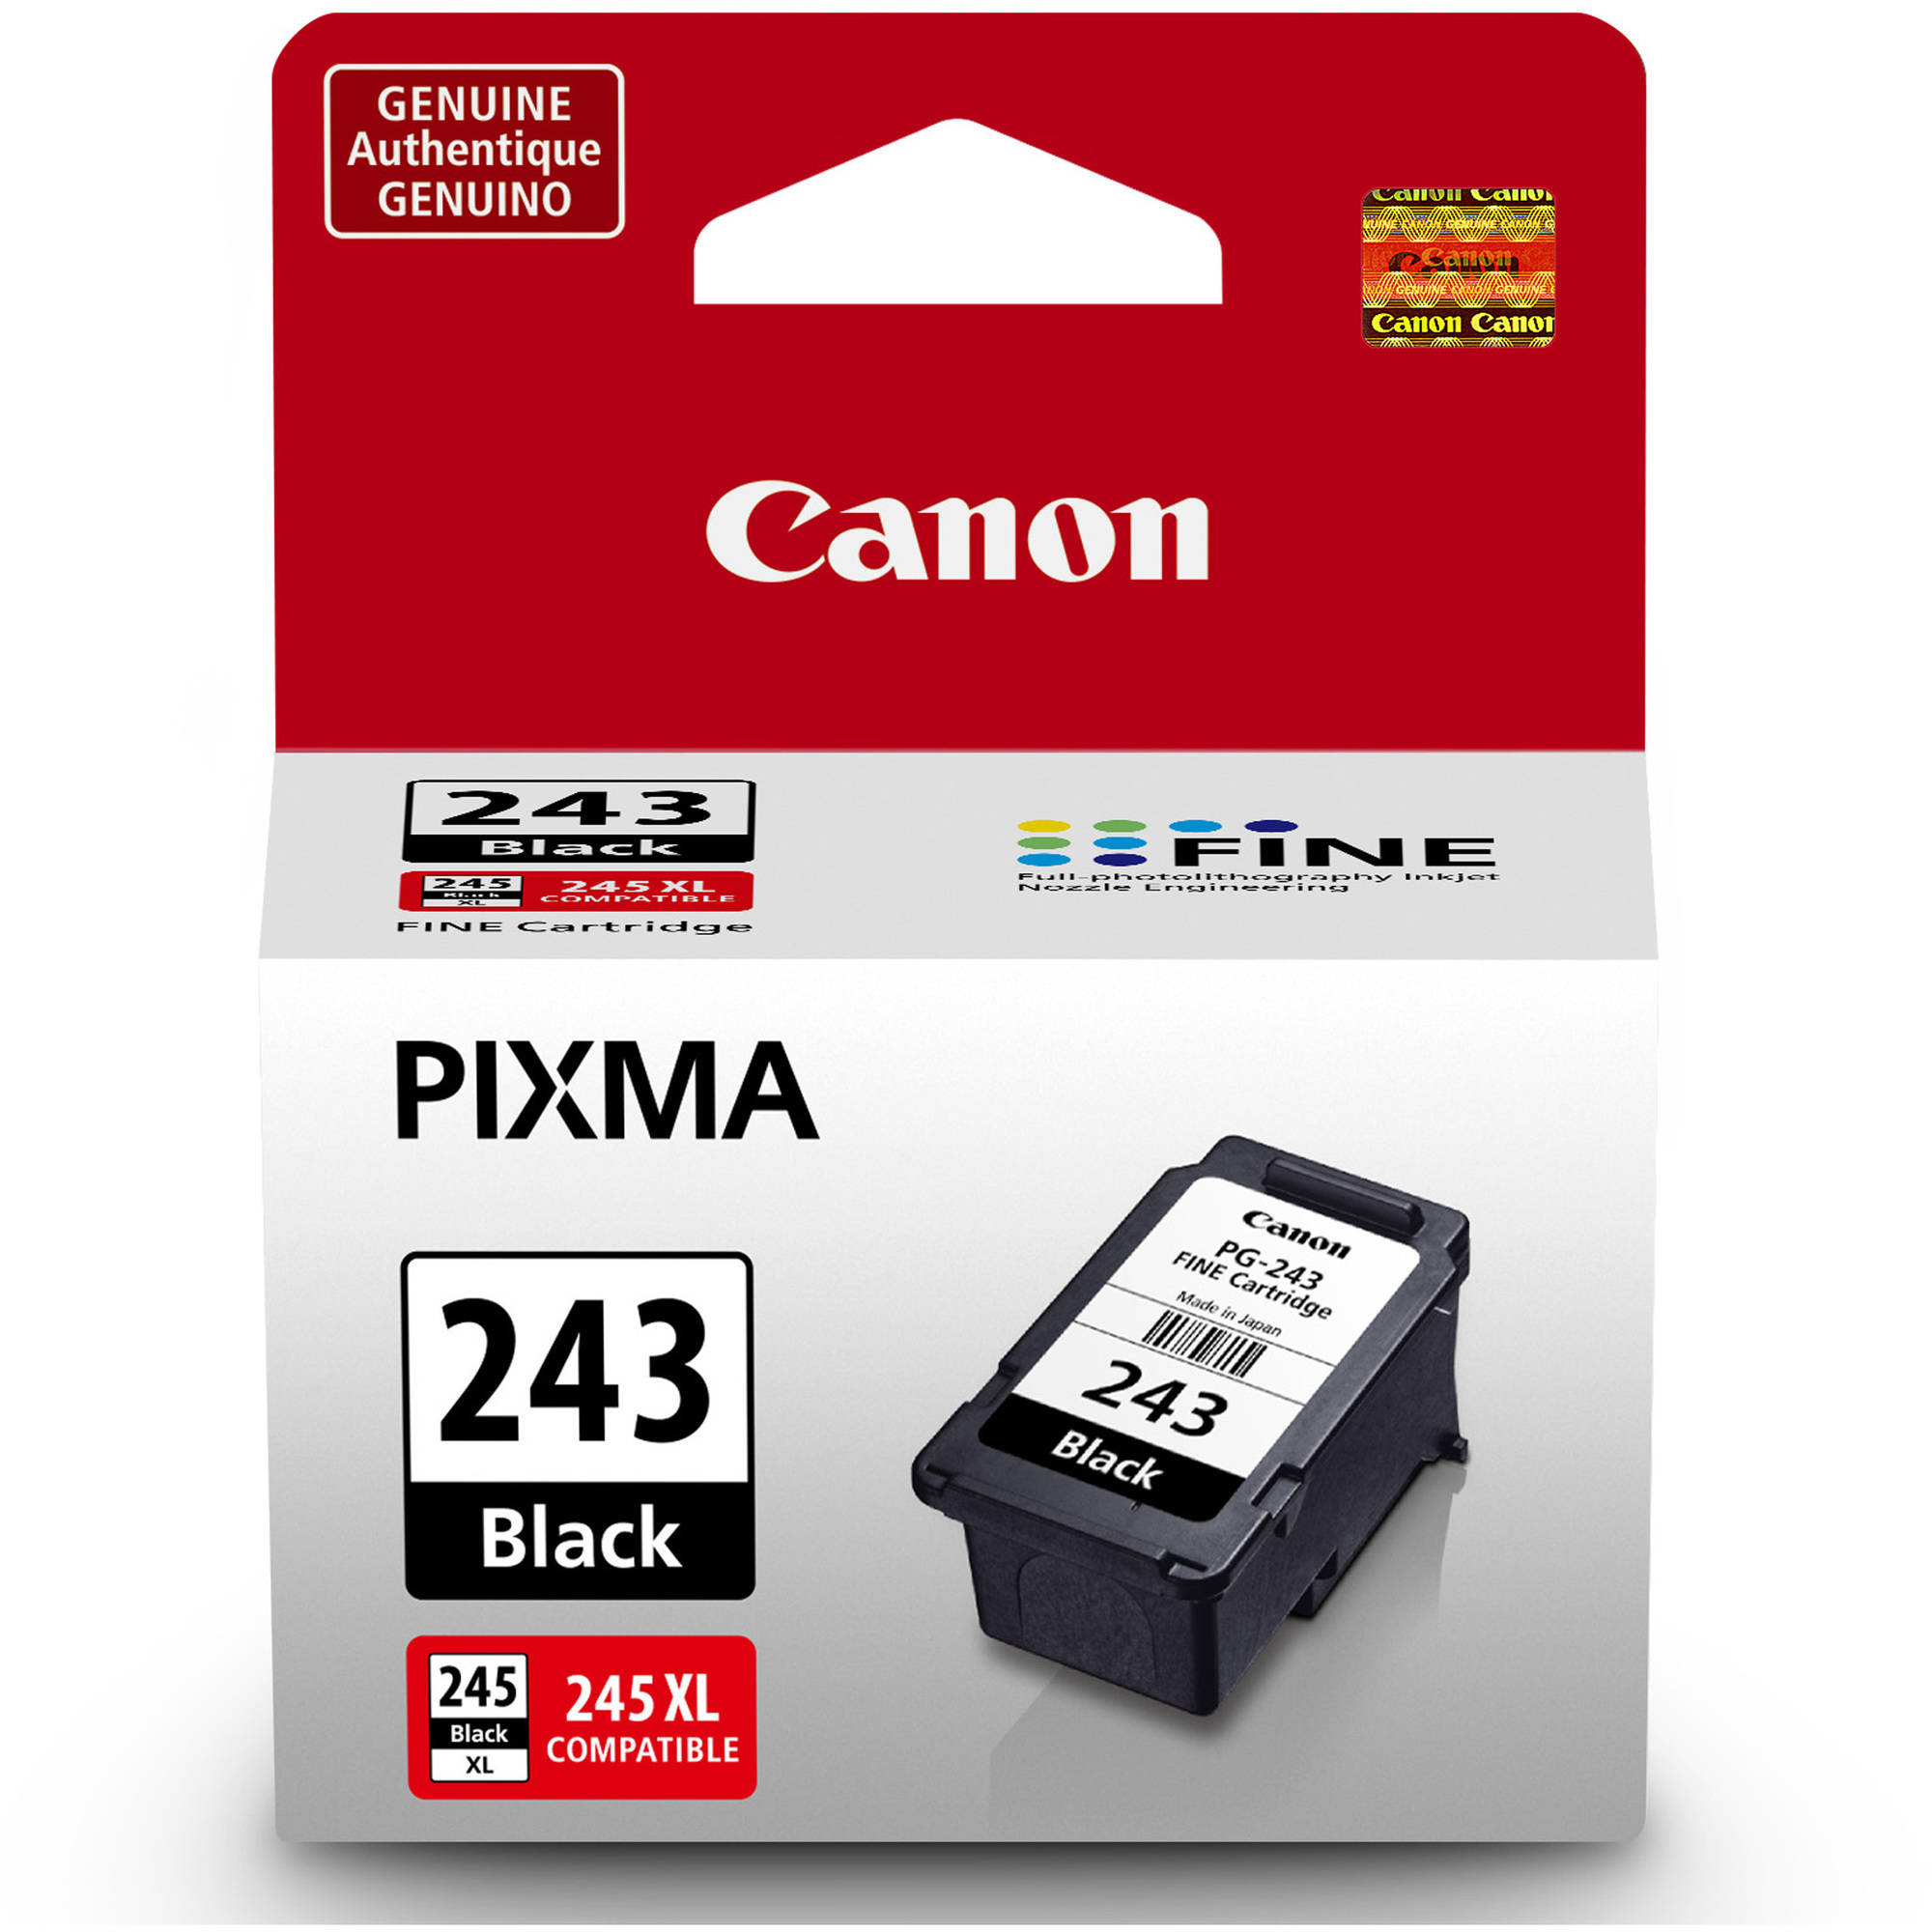 MG2420 MG2520 MG2555 Smart Print Supplies Compatible PG-245 PG245 Black Ink Cartridge Replacement for Canon Pixma iP2820 MX490 MX492 Printers 300 Pages - 6 Pack